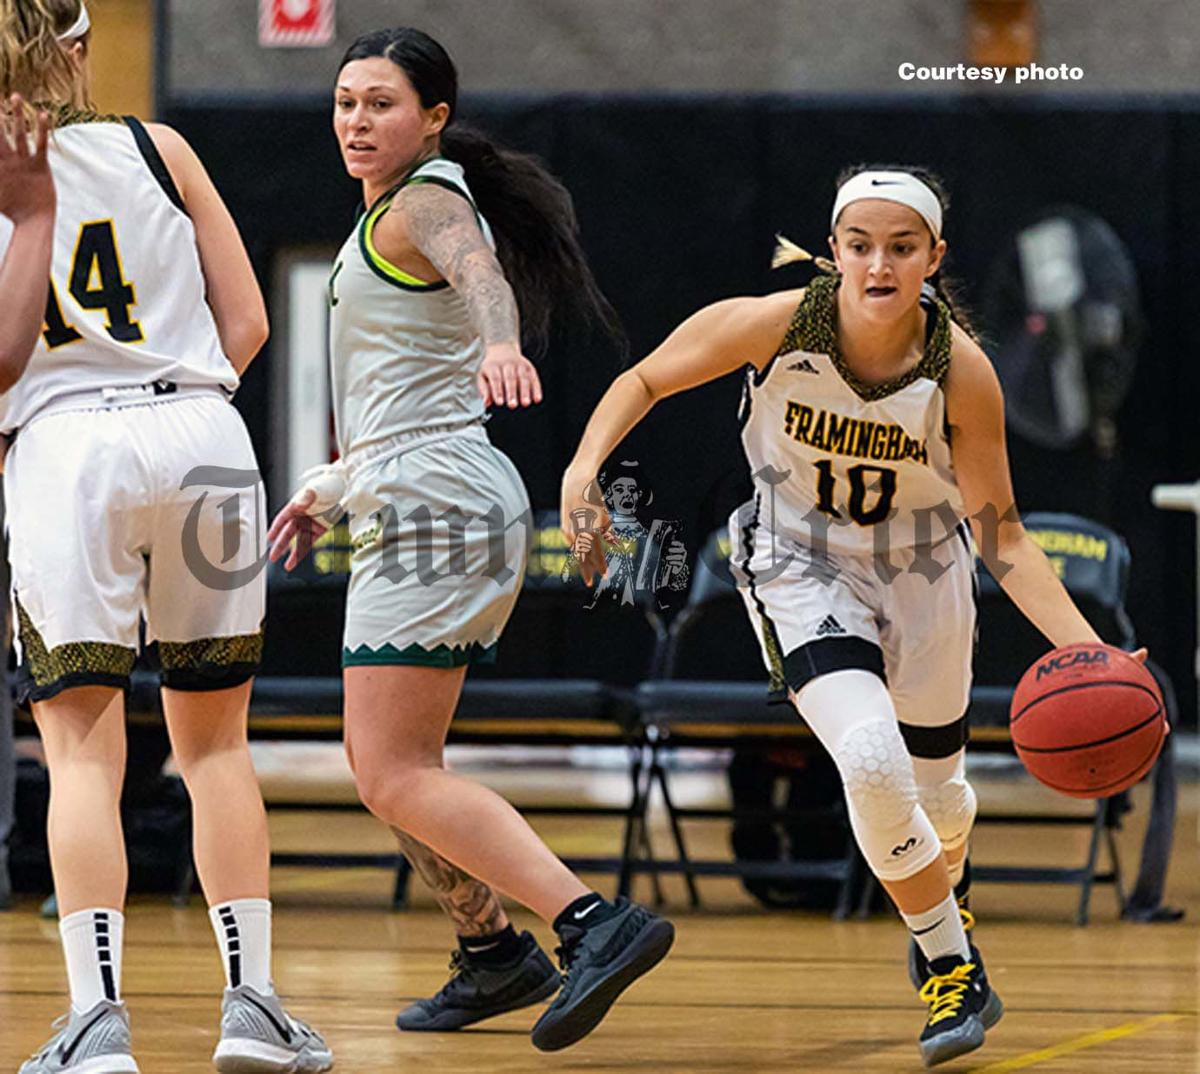 Tewksbury resident Emily Velozo, senior guard at Framingham State University